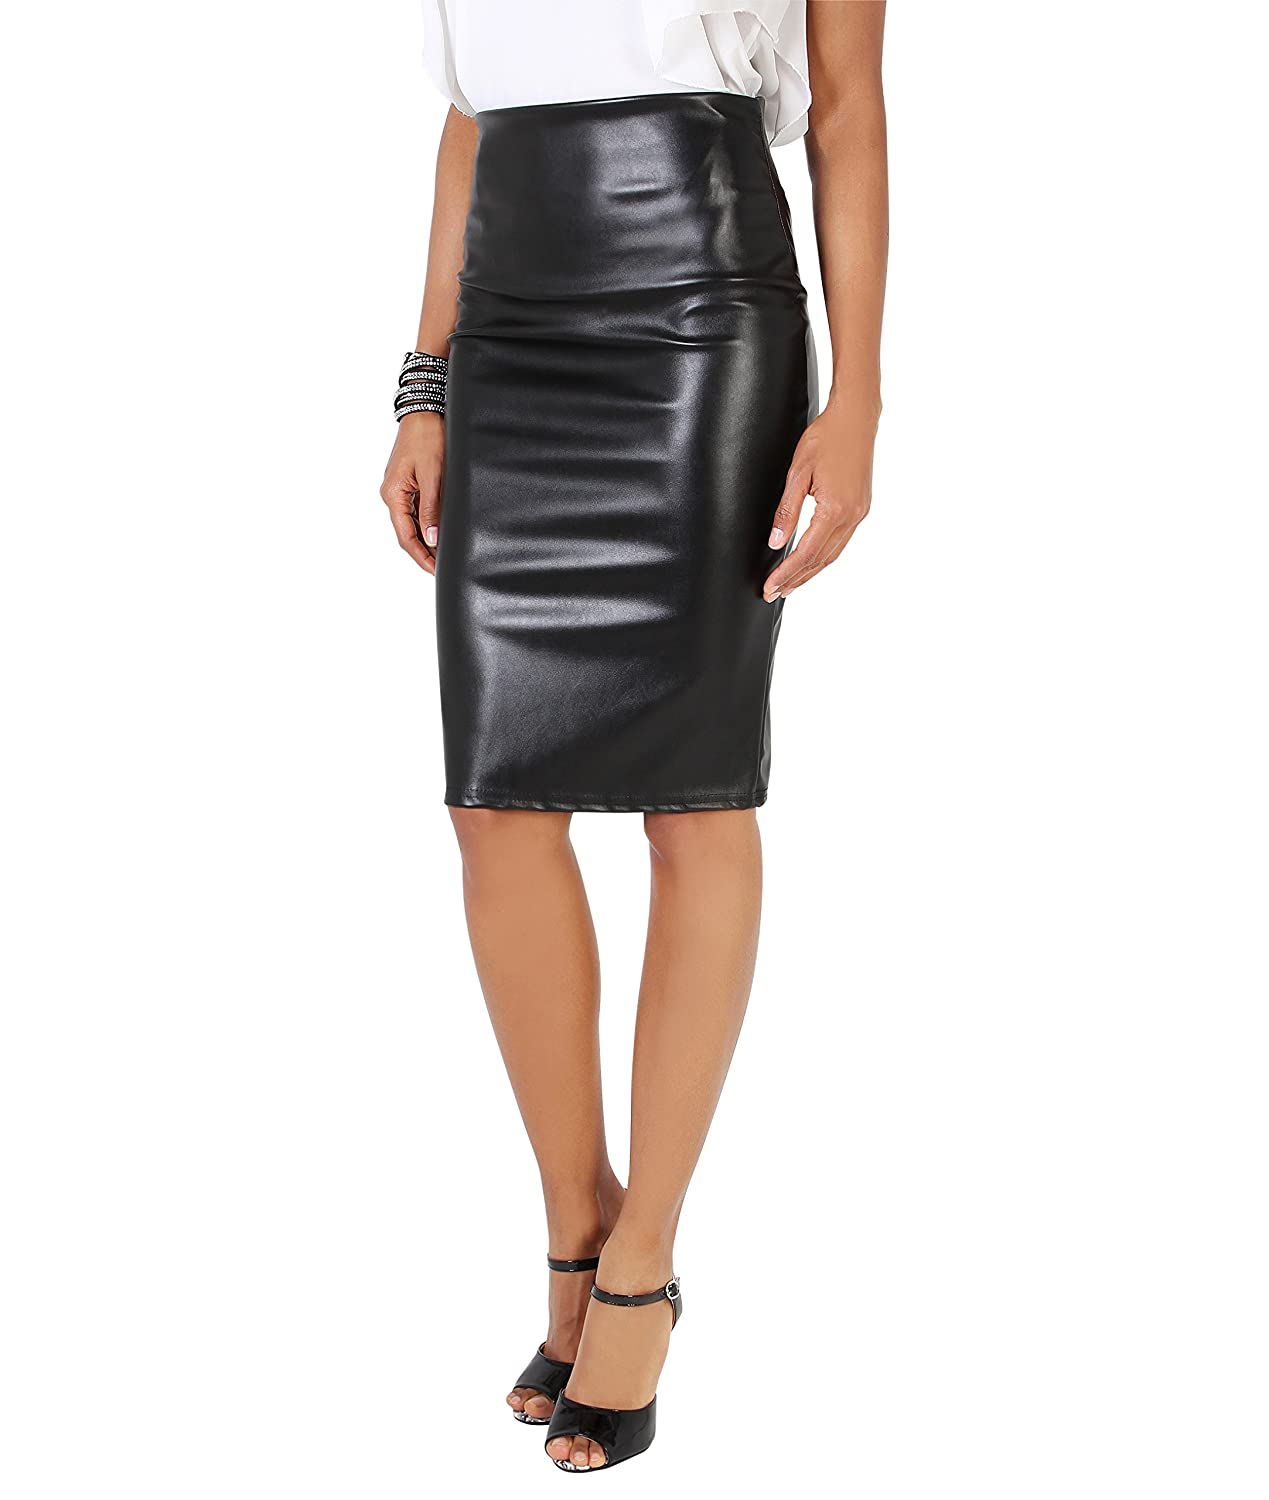 aa02ca7514 Krisp Womens PU Wet Look Stretch PU Leather Pencil Bodycon High Waist Skirt  at Amazon Women's Clothing store: